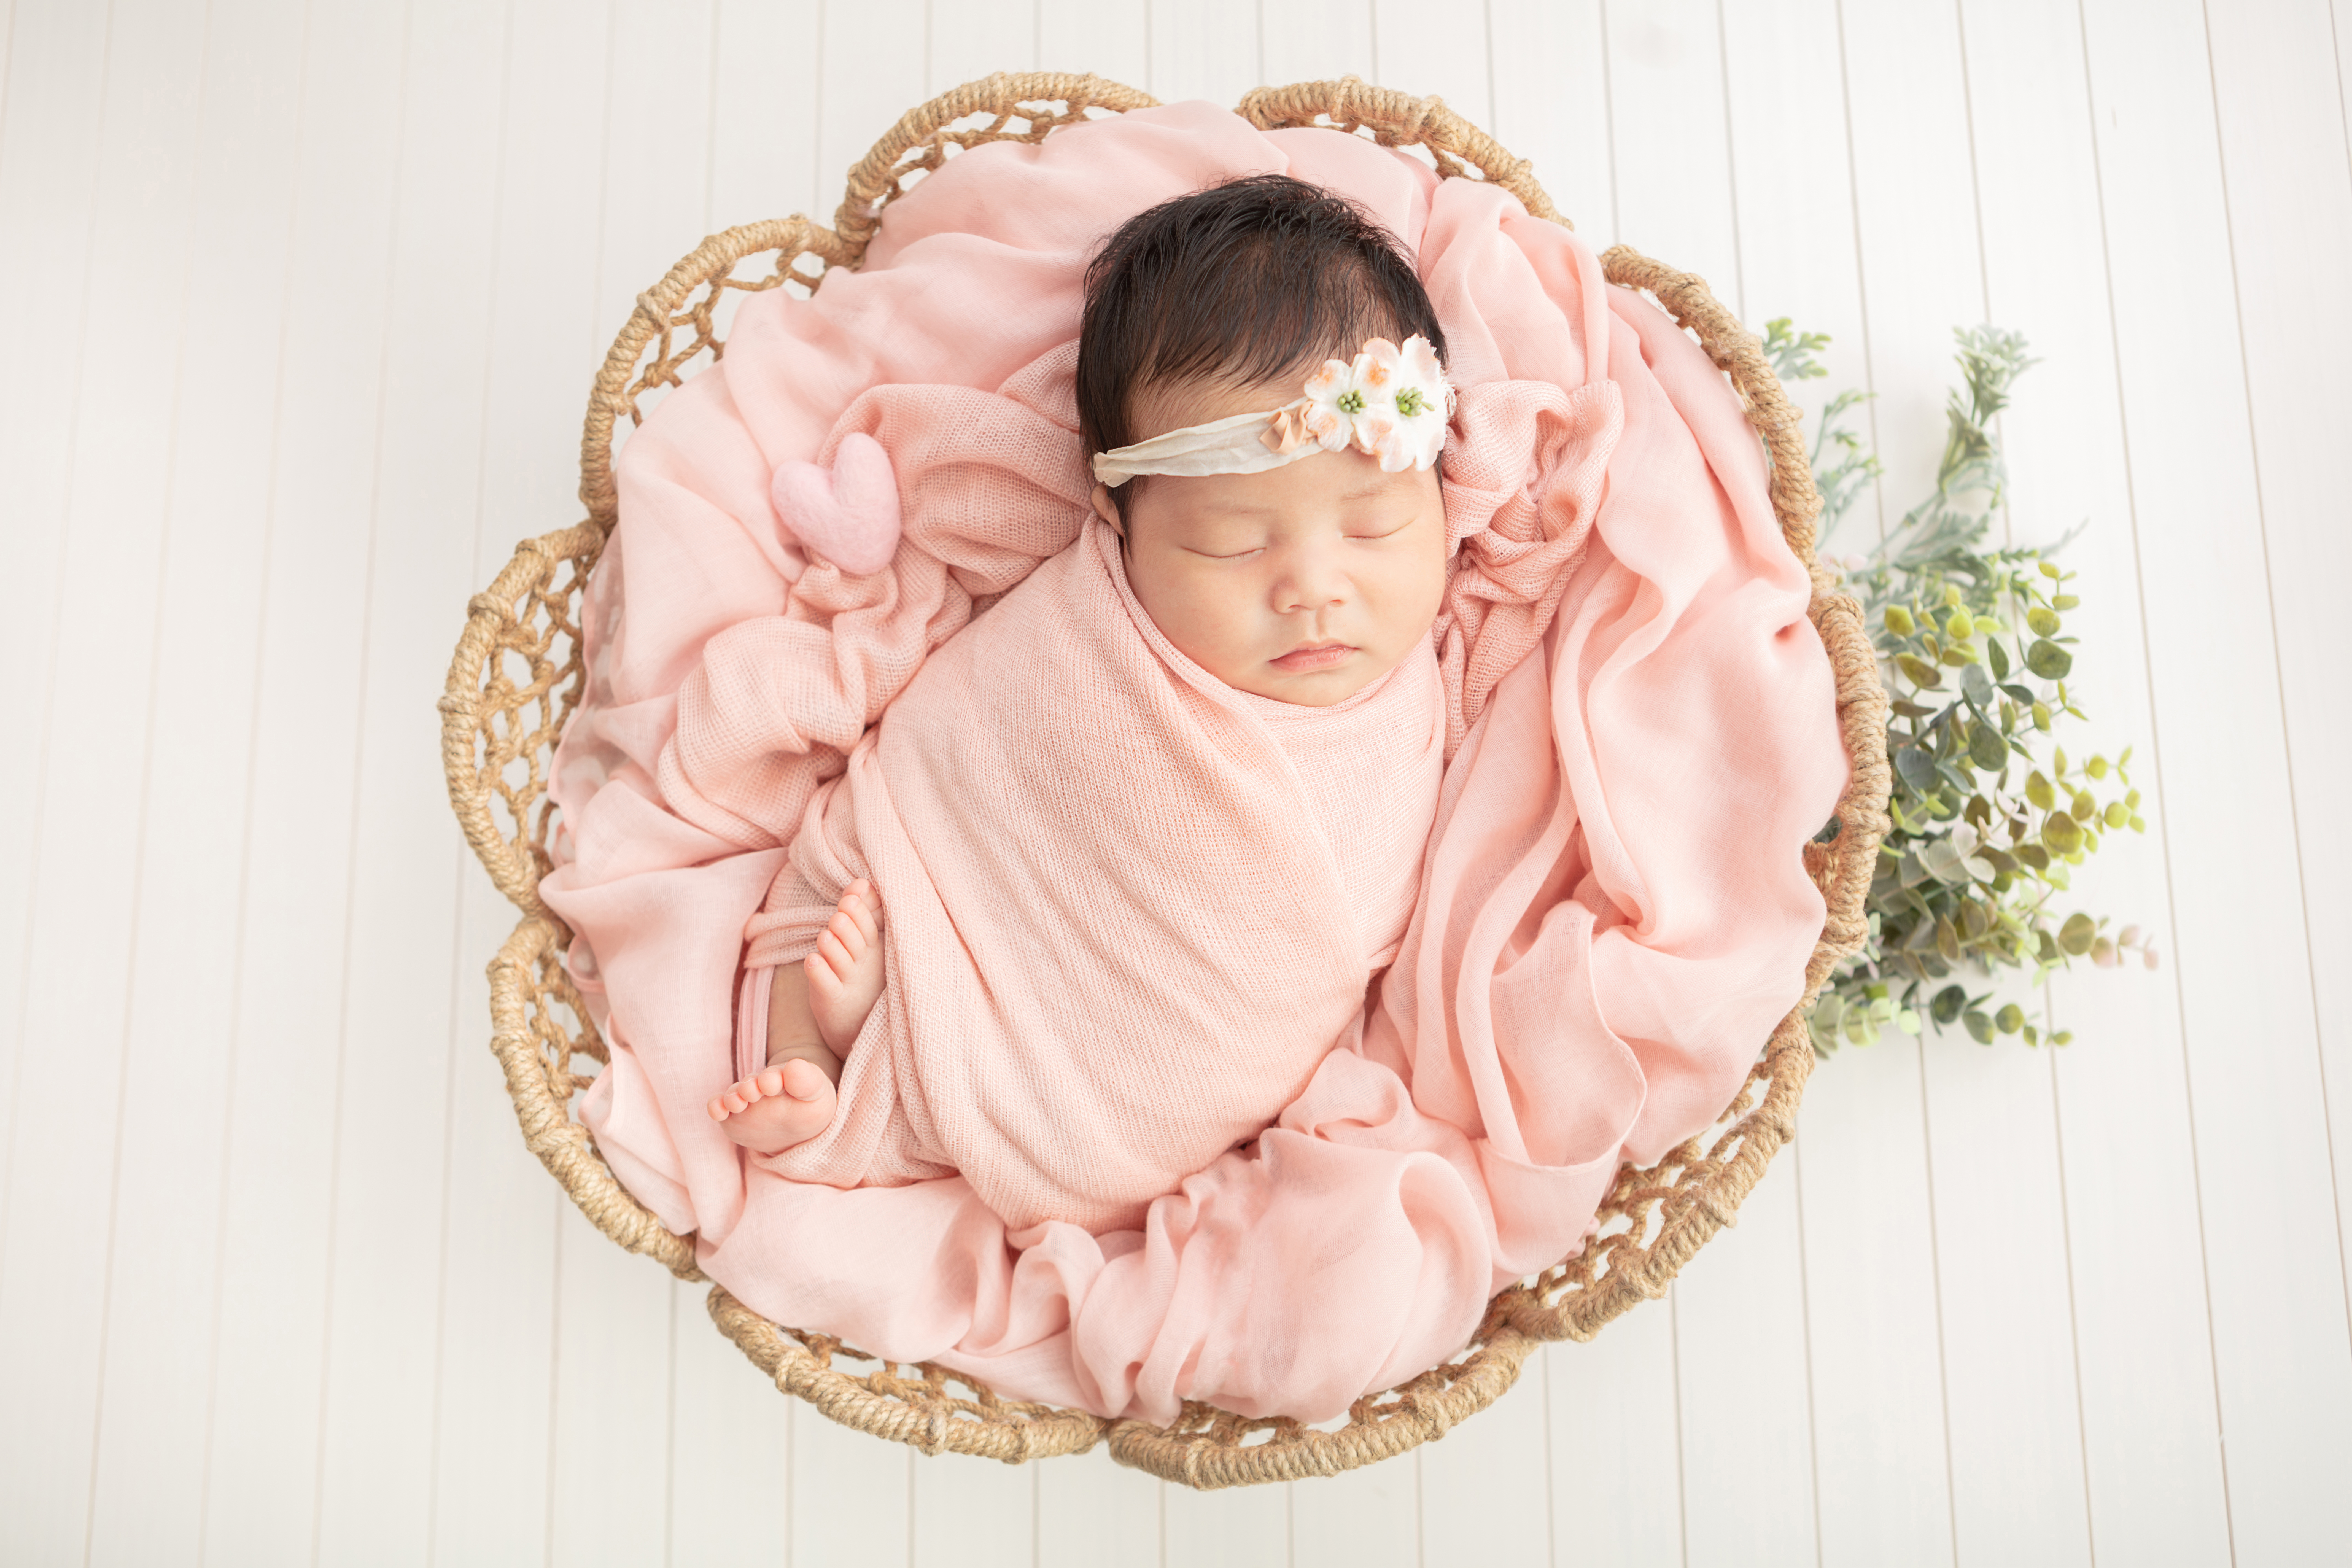 newborn baby girl with dark hair, swaddled in a light peachy pink swaddle, in a flower shaped wicker basket